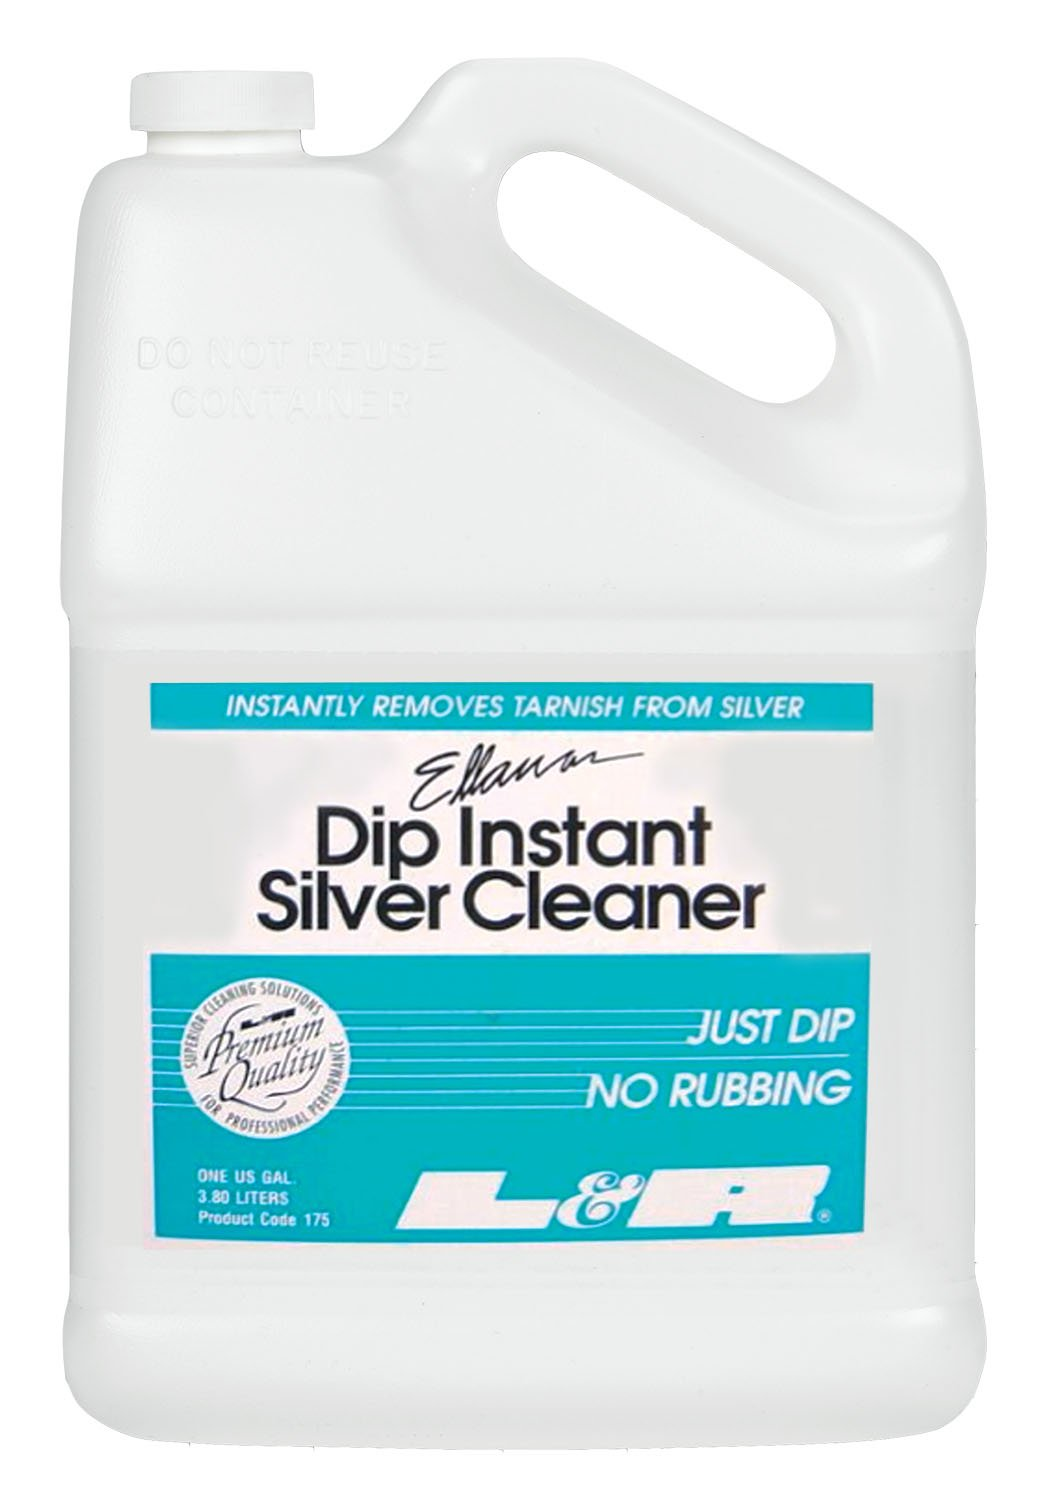 Dip Instant Silver Cleaner by L&R - 1 Gallon